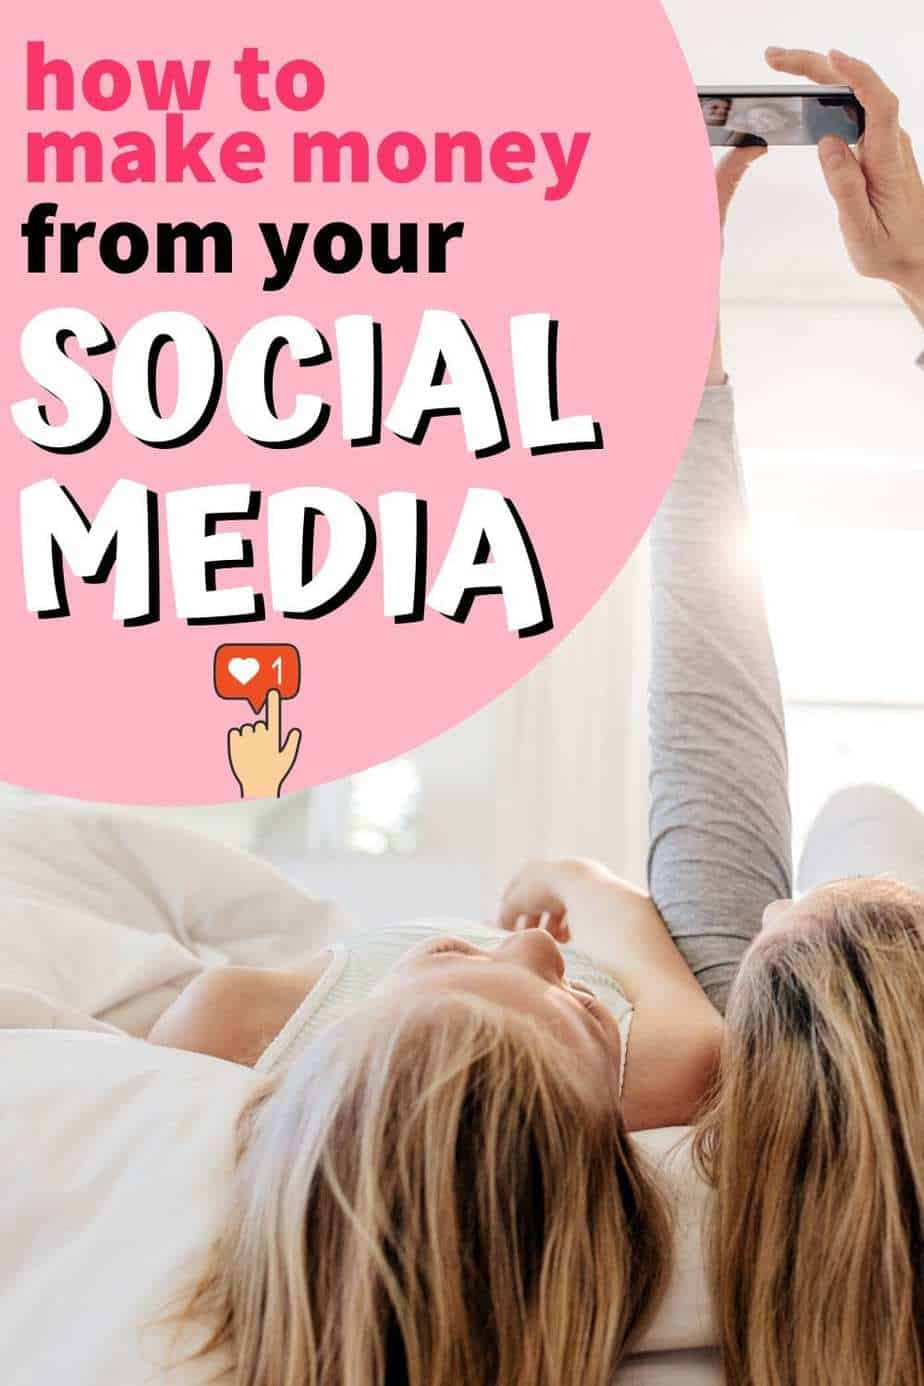 How to make money from your social media